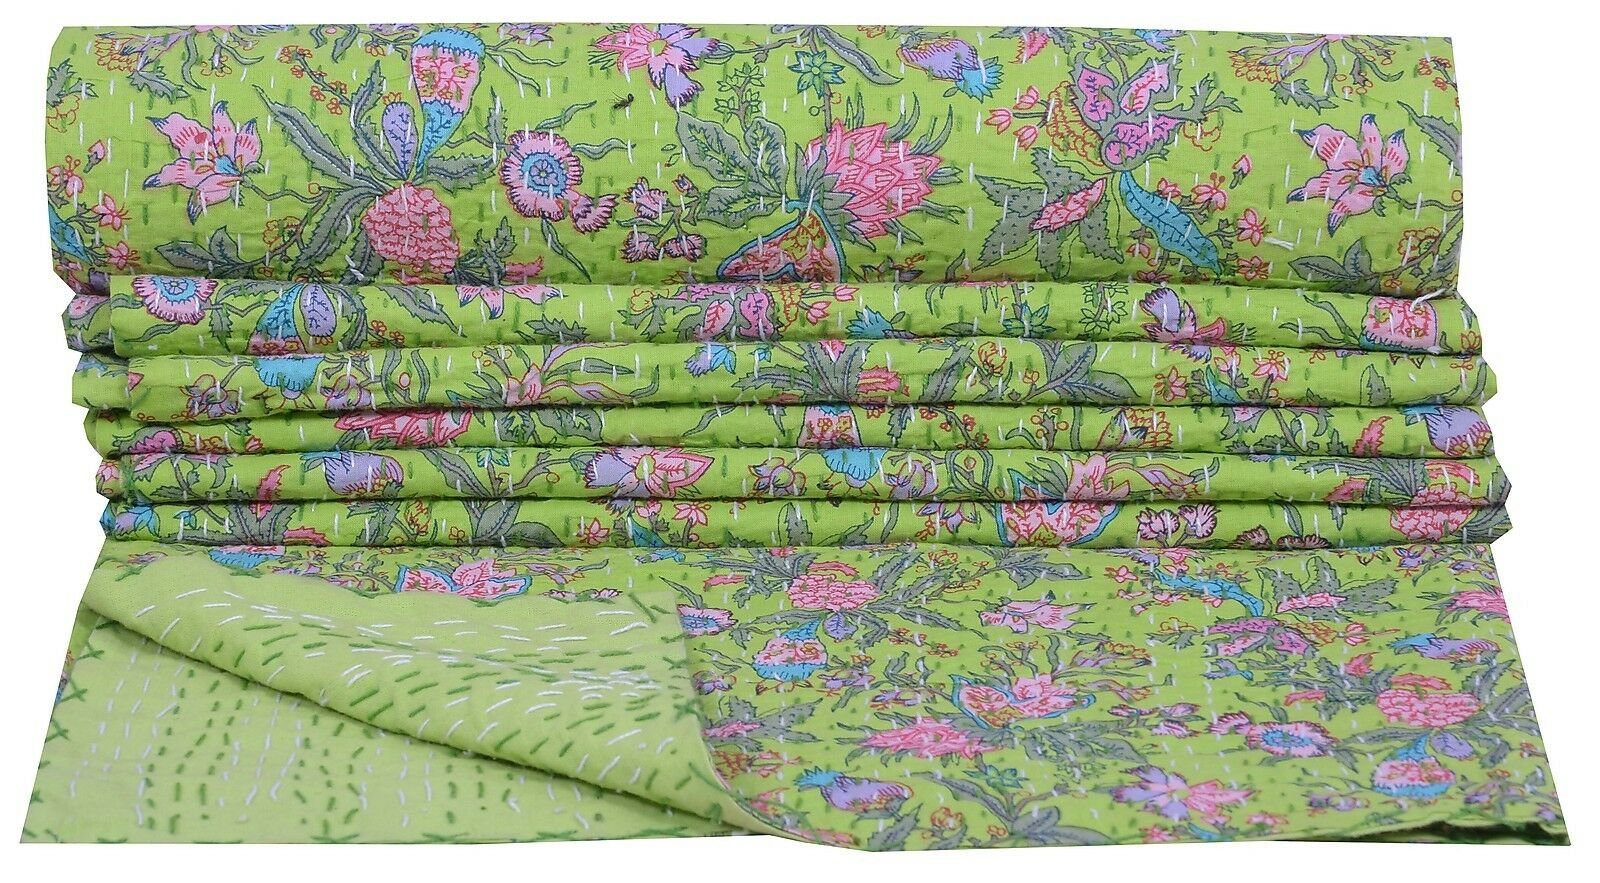 Indian Twin Kantha Quilt Green Bedspread Cotton Blanket Floral Paradise Gudari